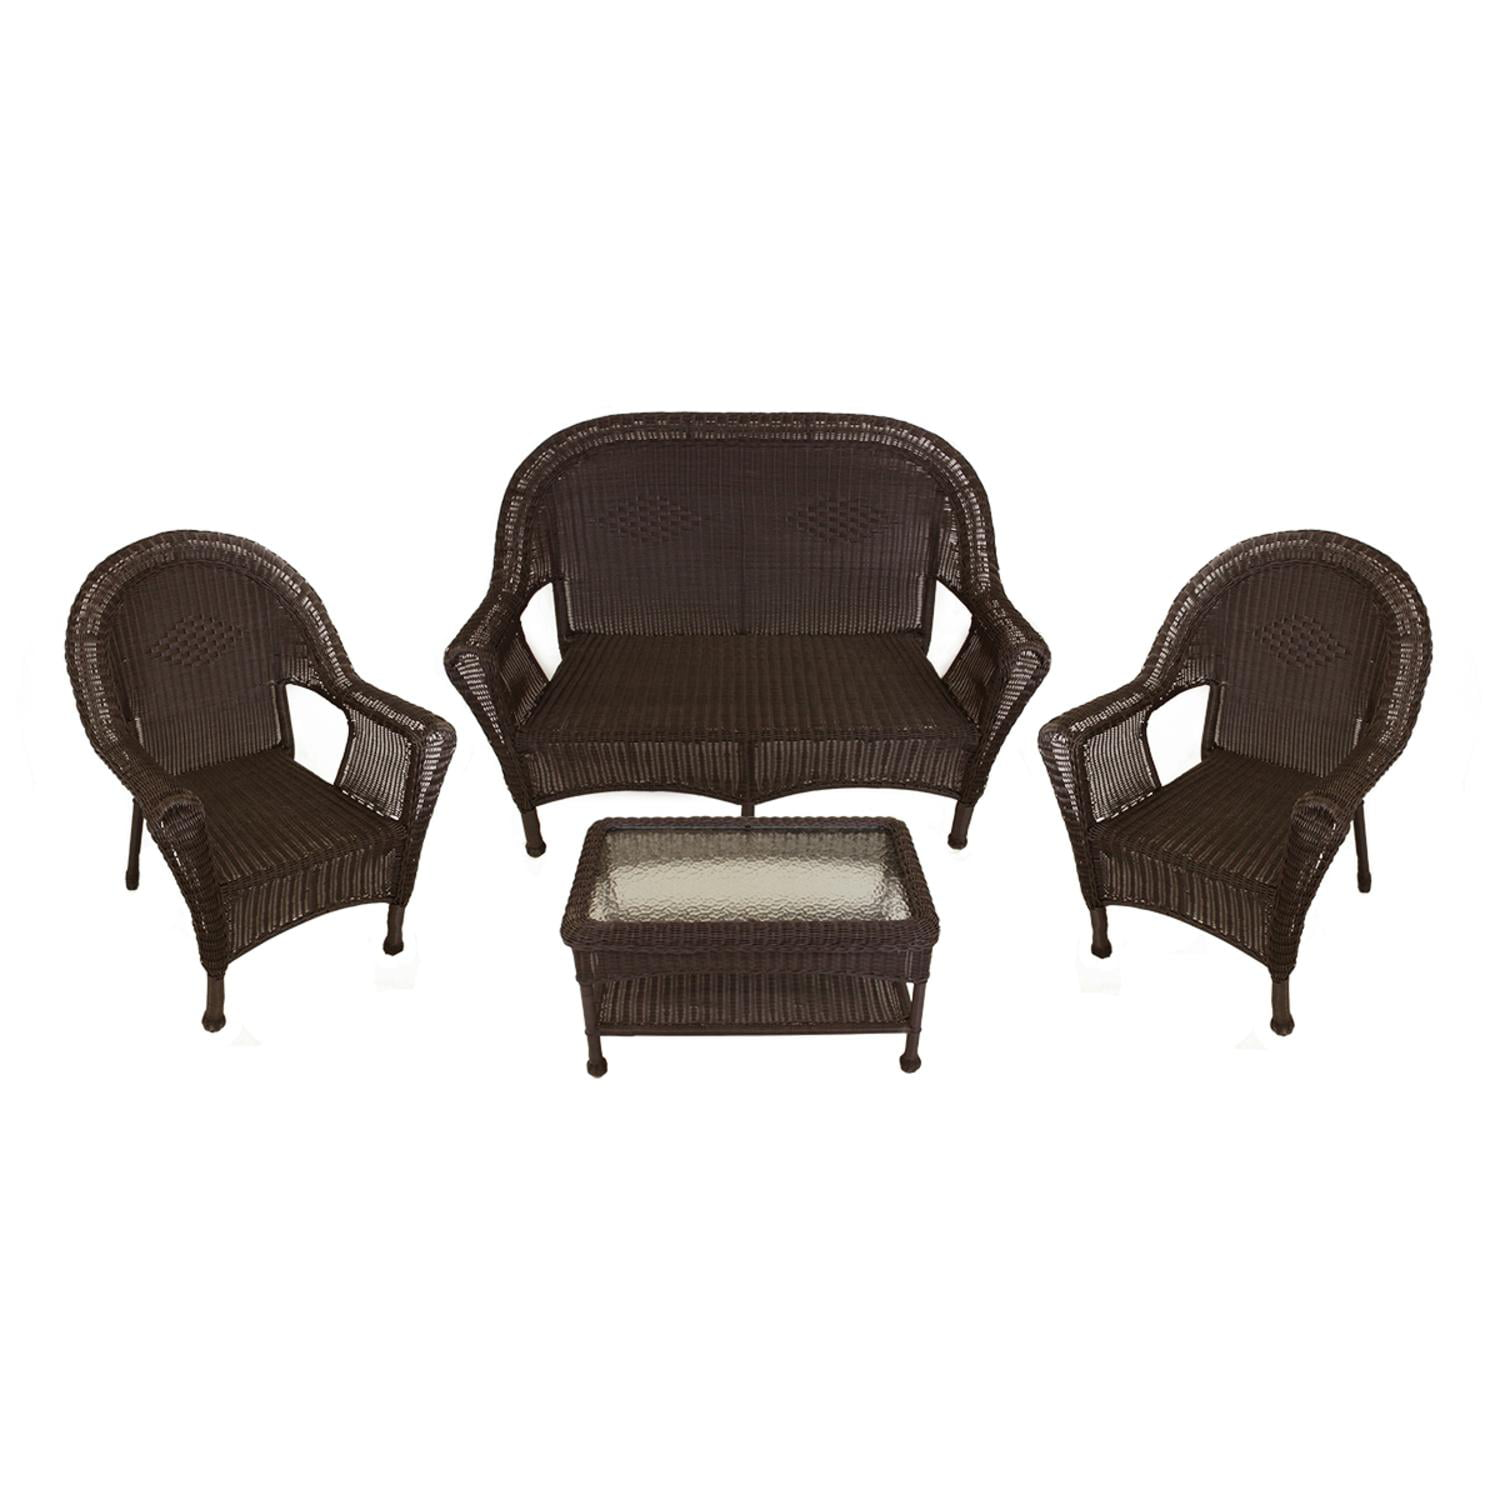 4-Piece Brown Resin Wicker Patio Furniture Set- 2 Chairs Loveseat